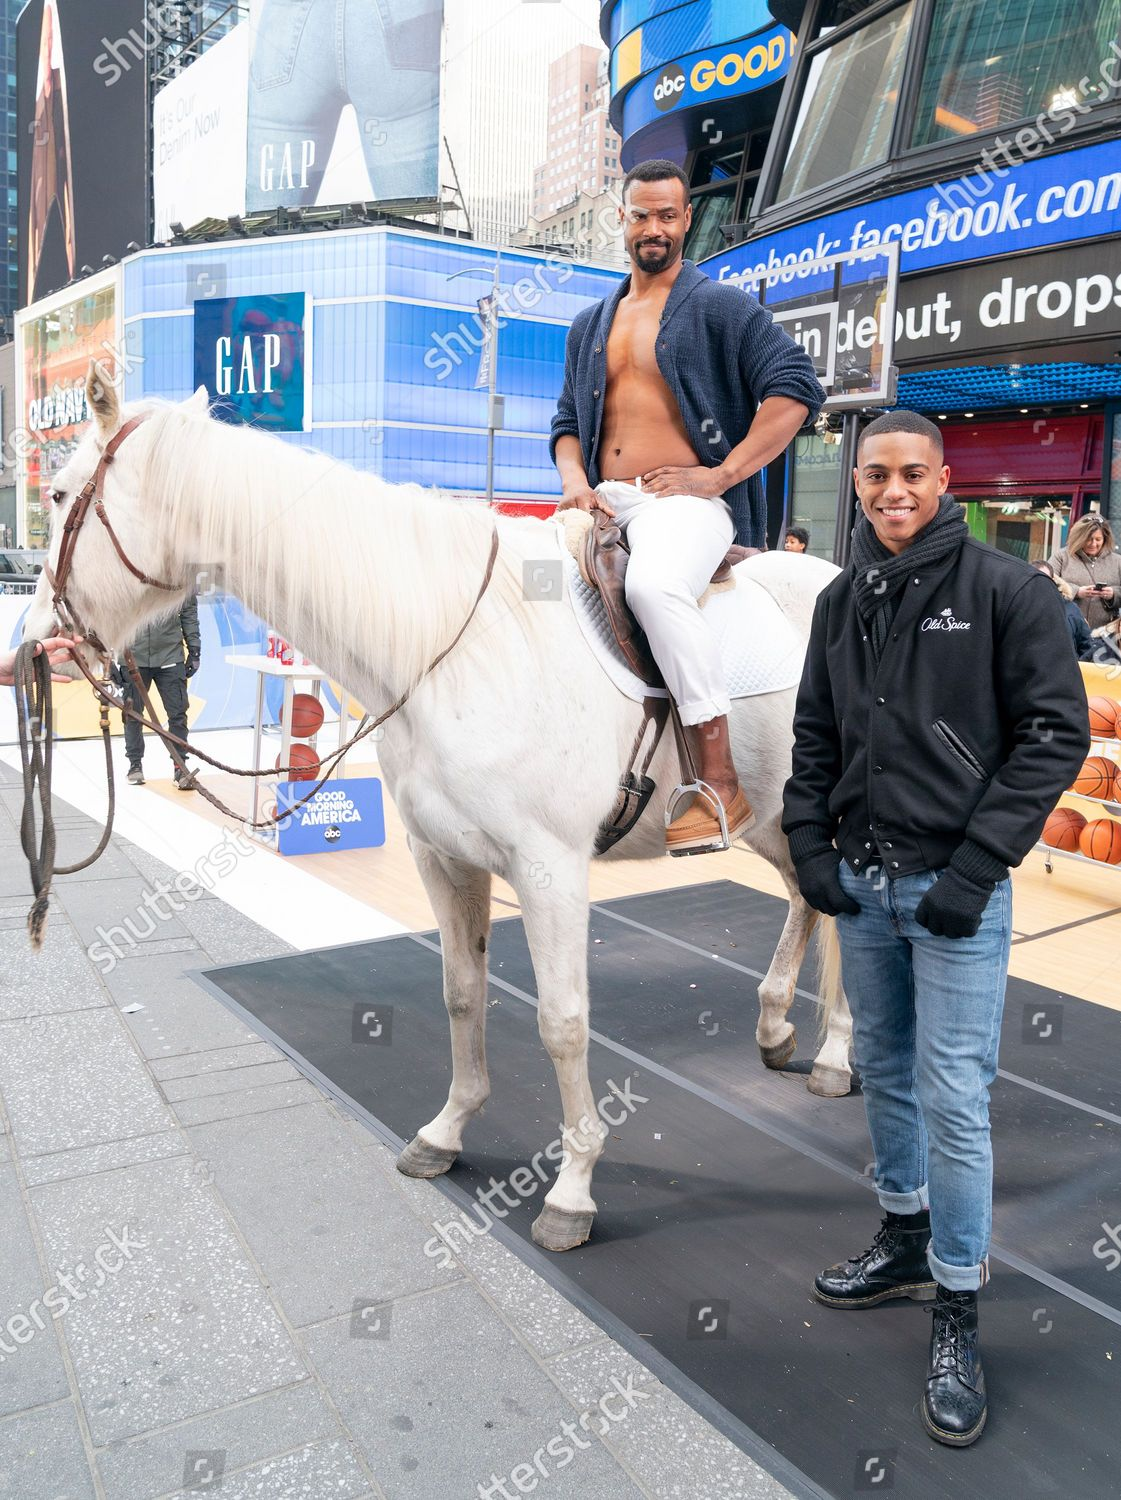 ภาพสต็อกของ NY: Old Spice promotion on Times Square, New York, United States - 23 Jan 2020